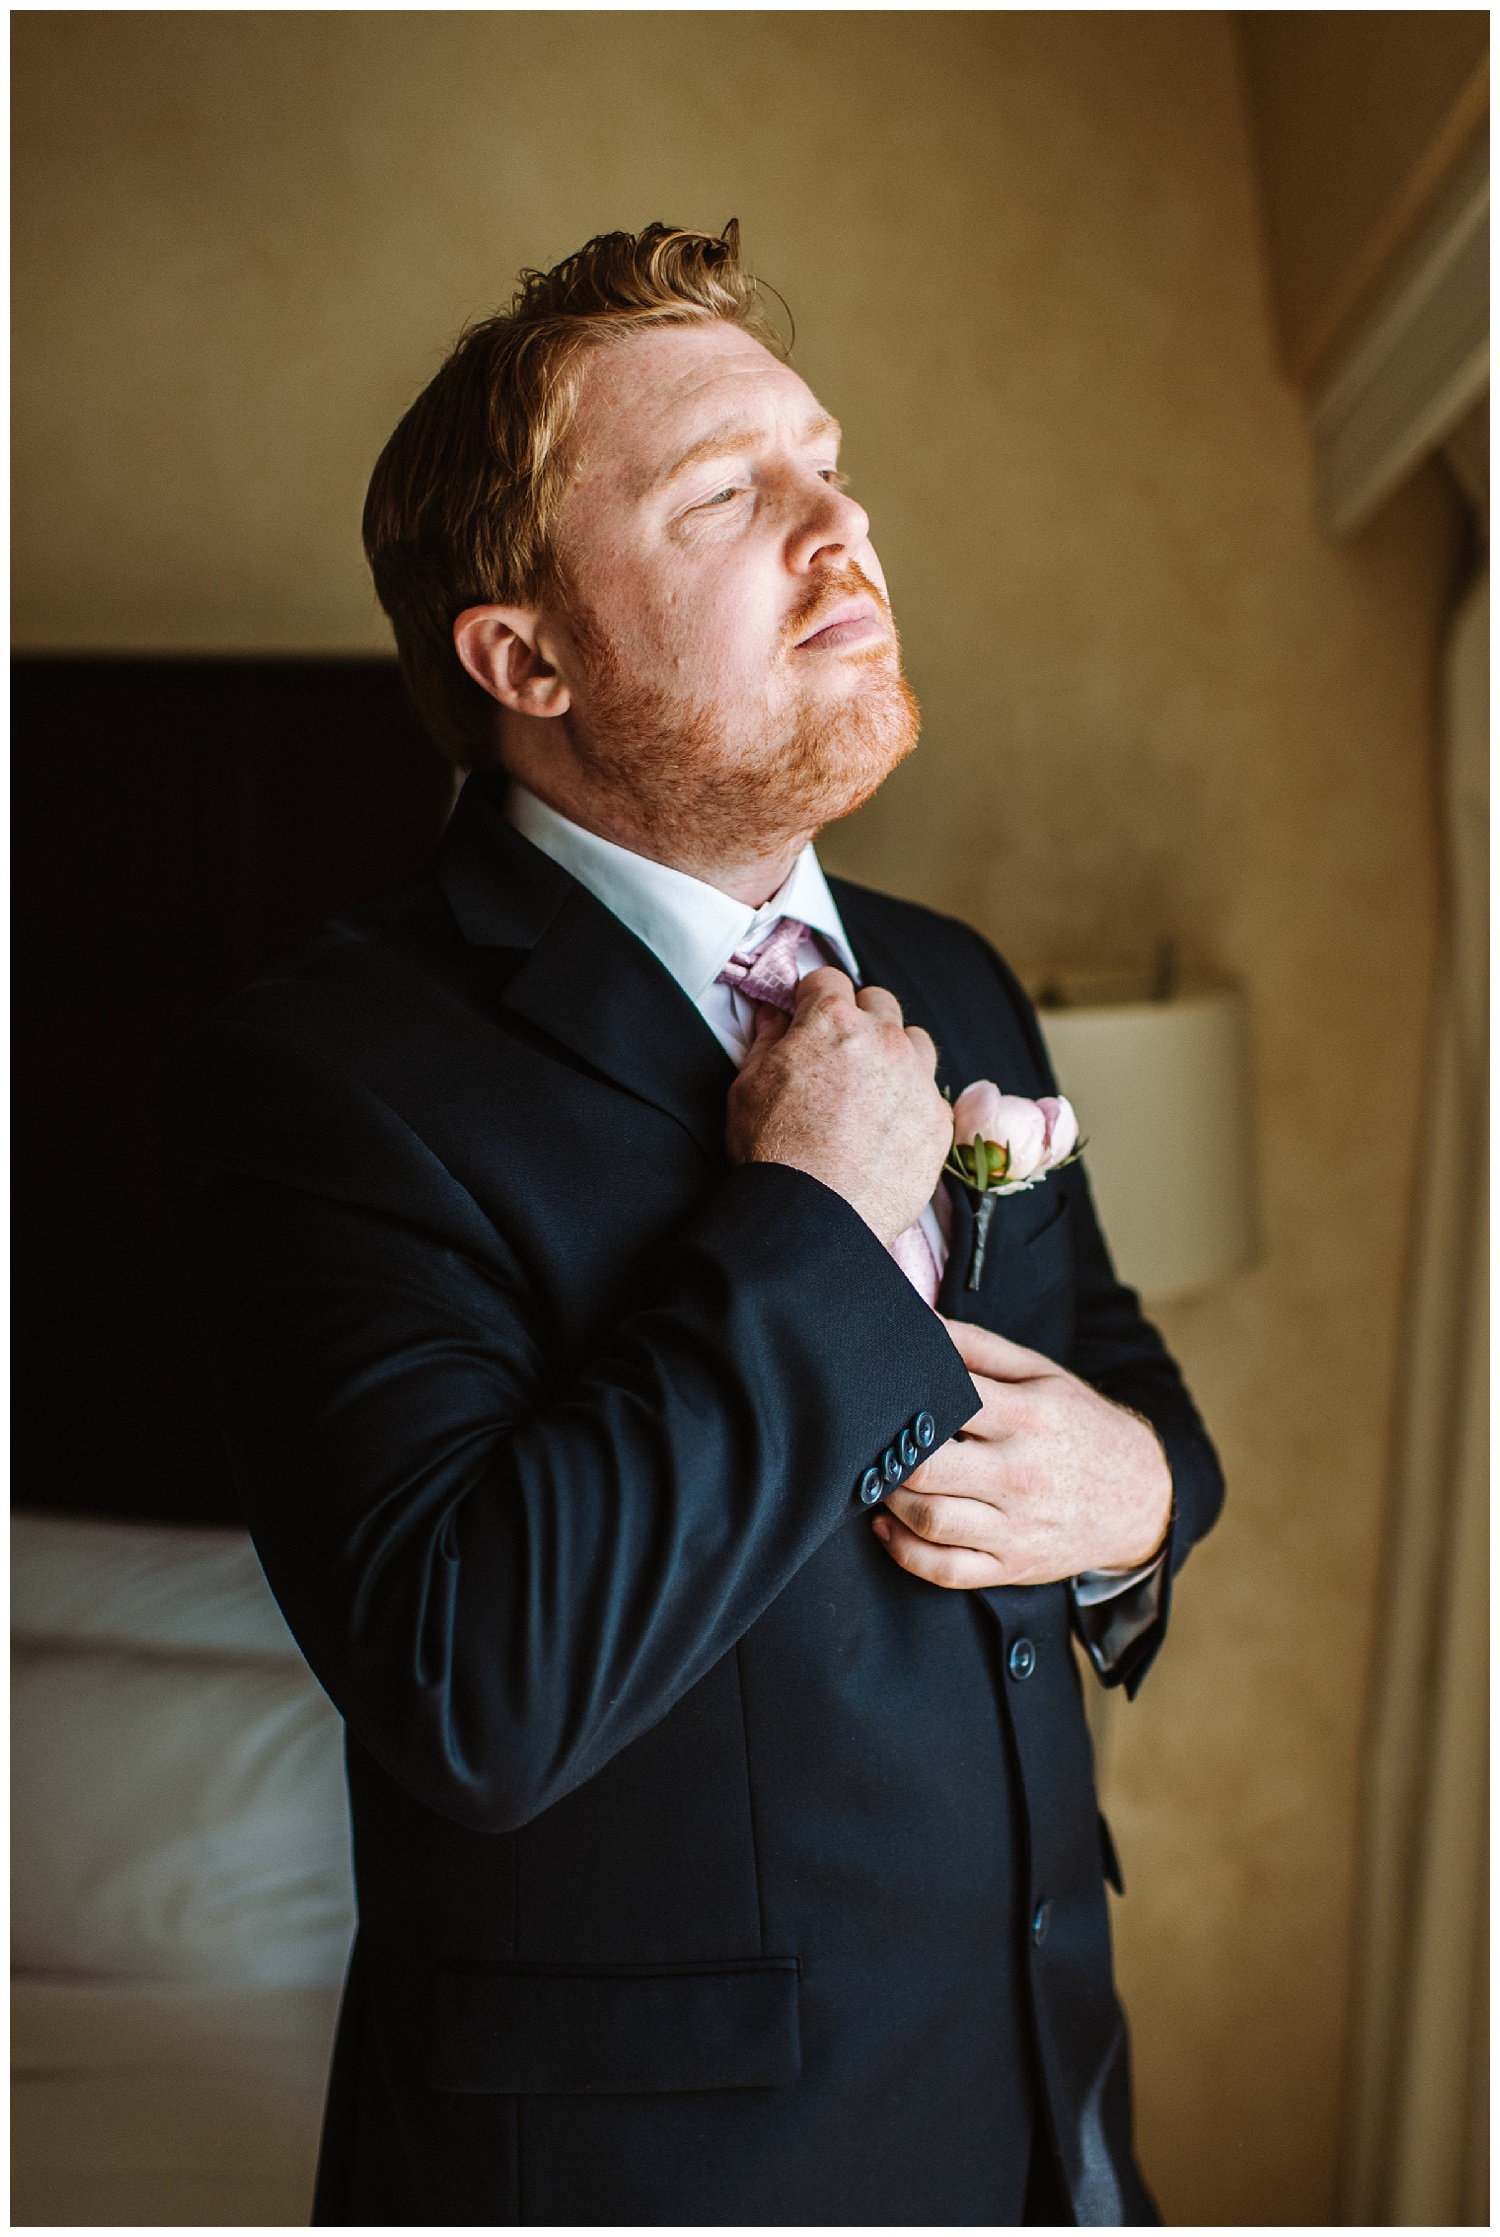 Renaissance Hotel Gillette Stadium Wedding Photographer20.jpg